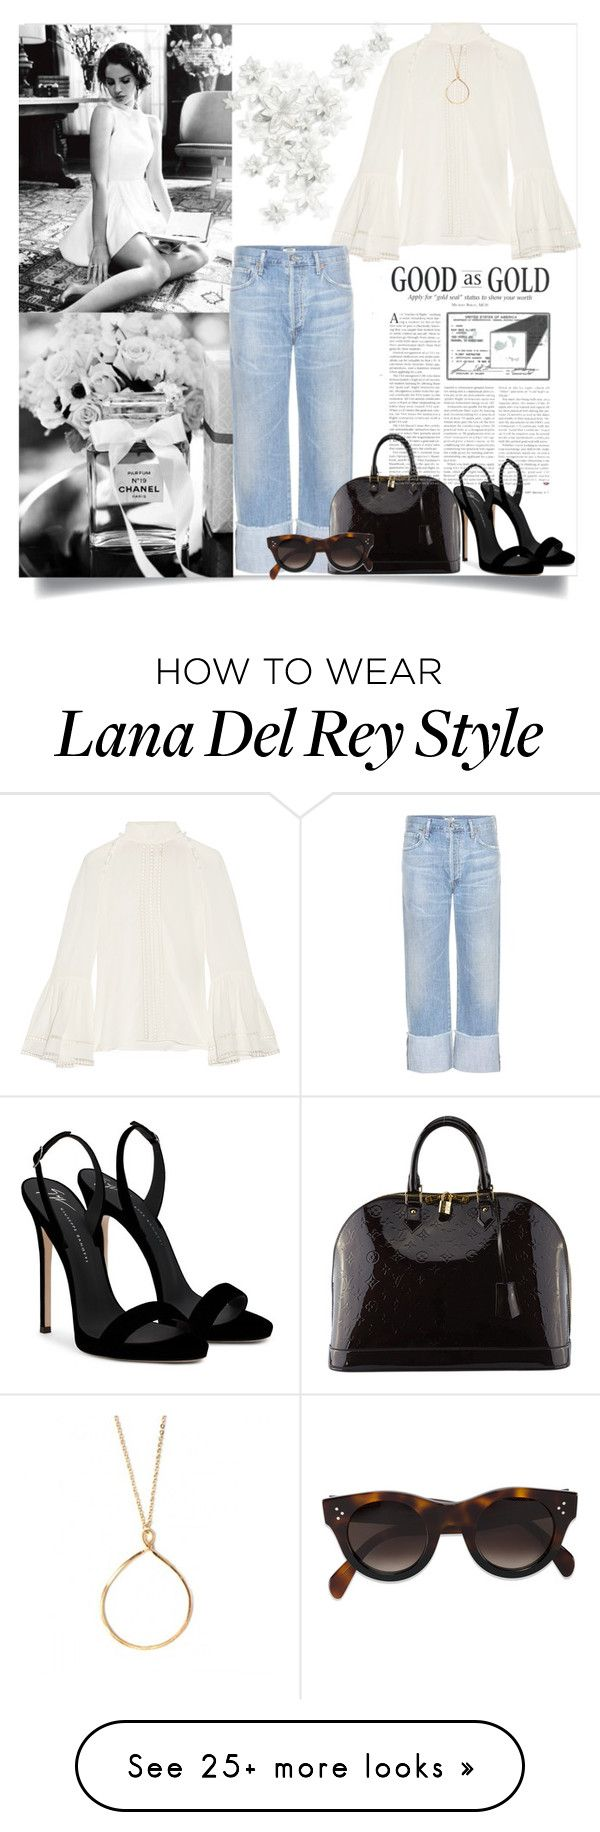 """""""Good As Gold"""" by sherryphoenix on Polyvore featuring Fendi, Citizens of Humanity, Giuseppe Zanotti, Louis Vuitton and CÉLINE"""